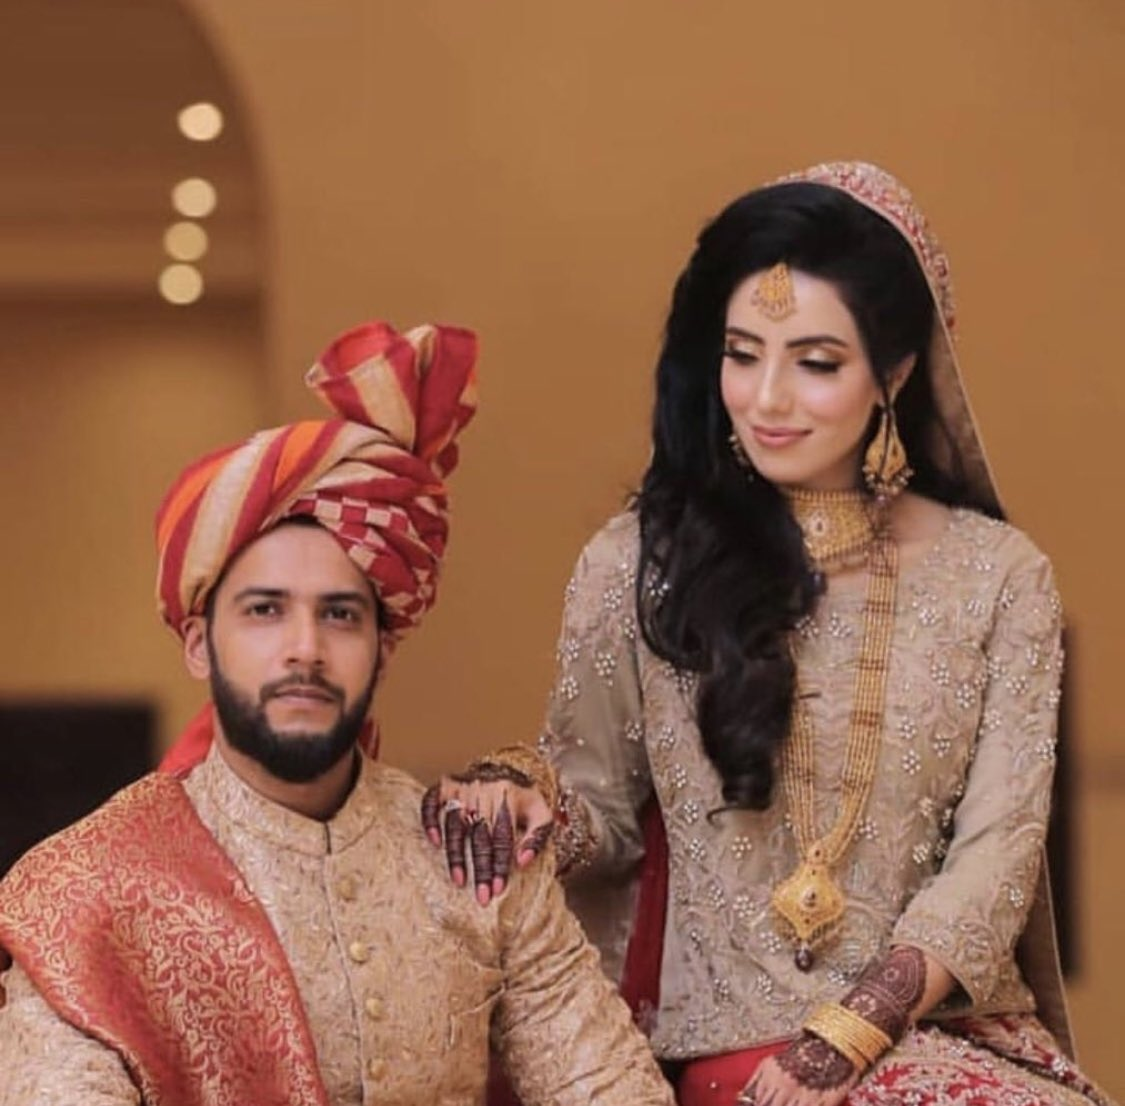 Congratulations on the beginning of the new chapter of your life. May ALLAH bless both of you with happiness and love @simadwasim